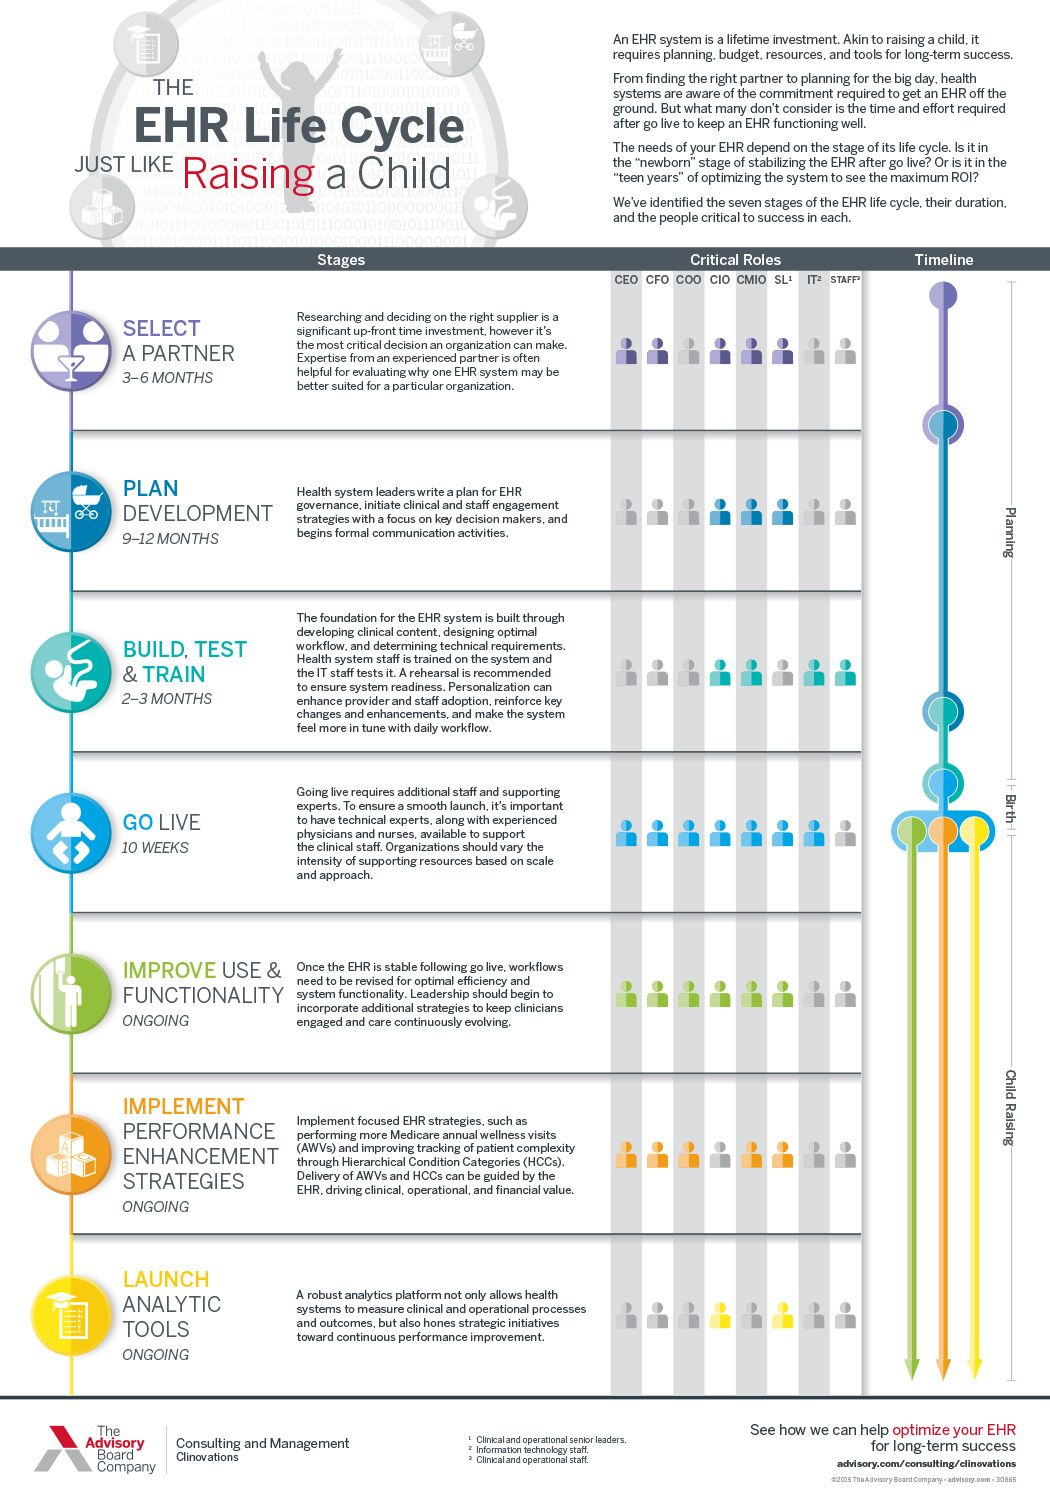 Learn More About The 7 Stages Of The Ehr Life Cycle Life Cycles